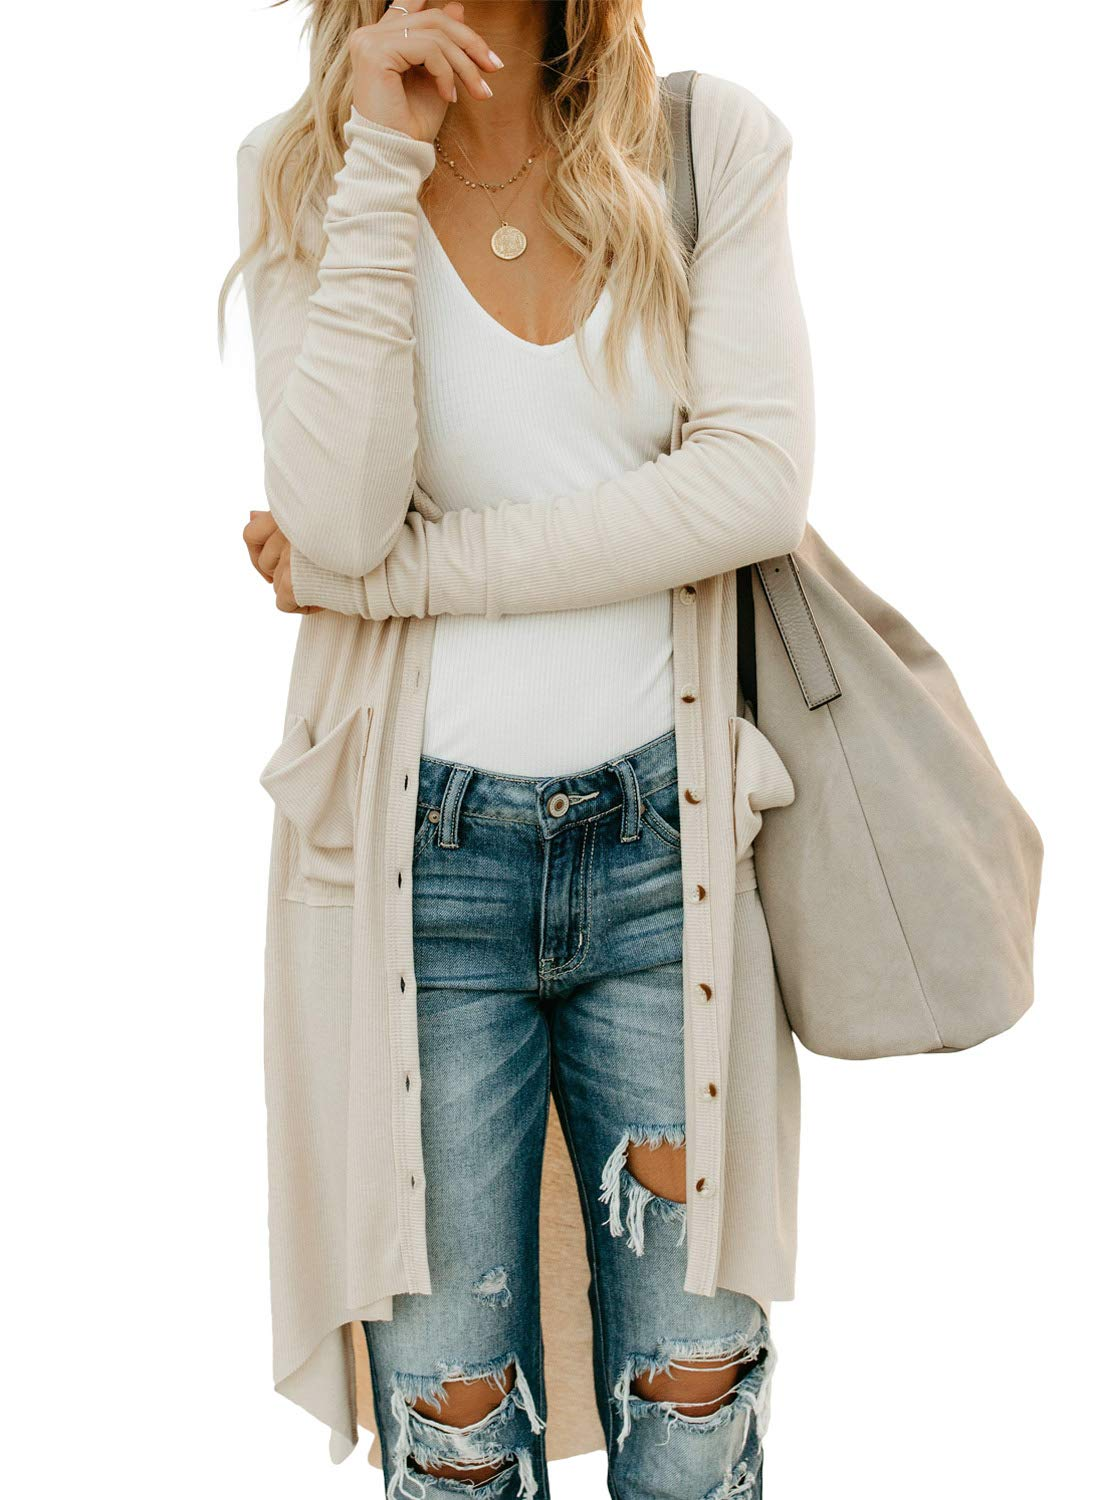 SIDEFEEL Women Long Sleeve Solid Color Button Down Knit Ribbed Cardigans Outwear Small Apricot by SIDEFEEL